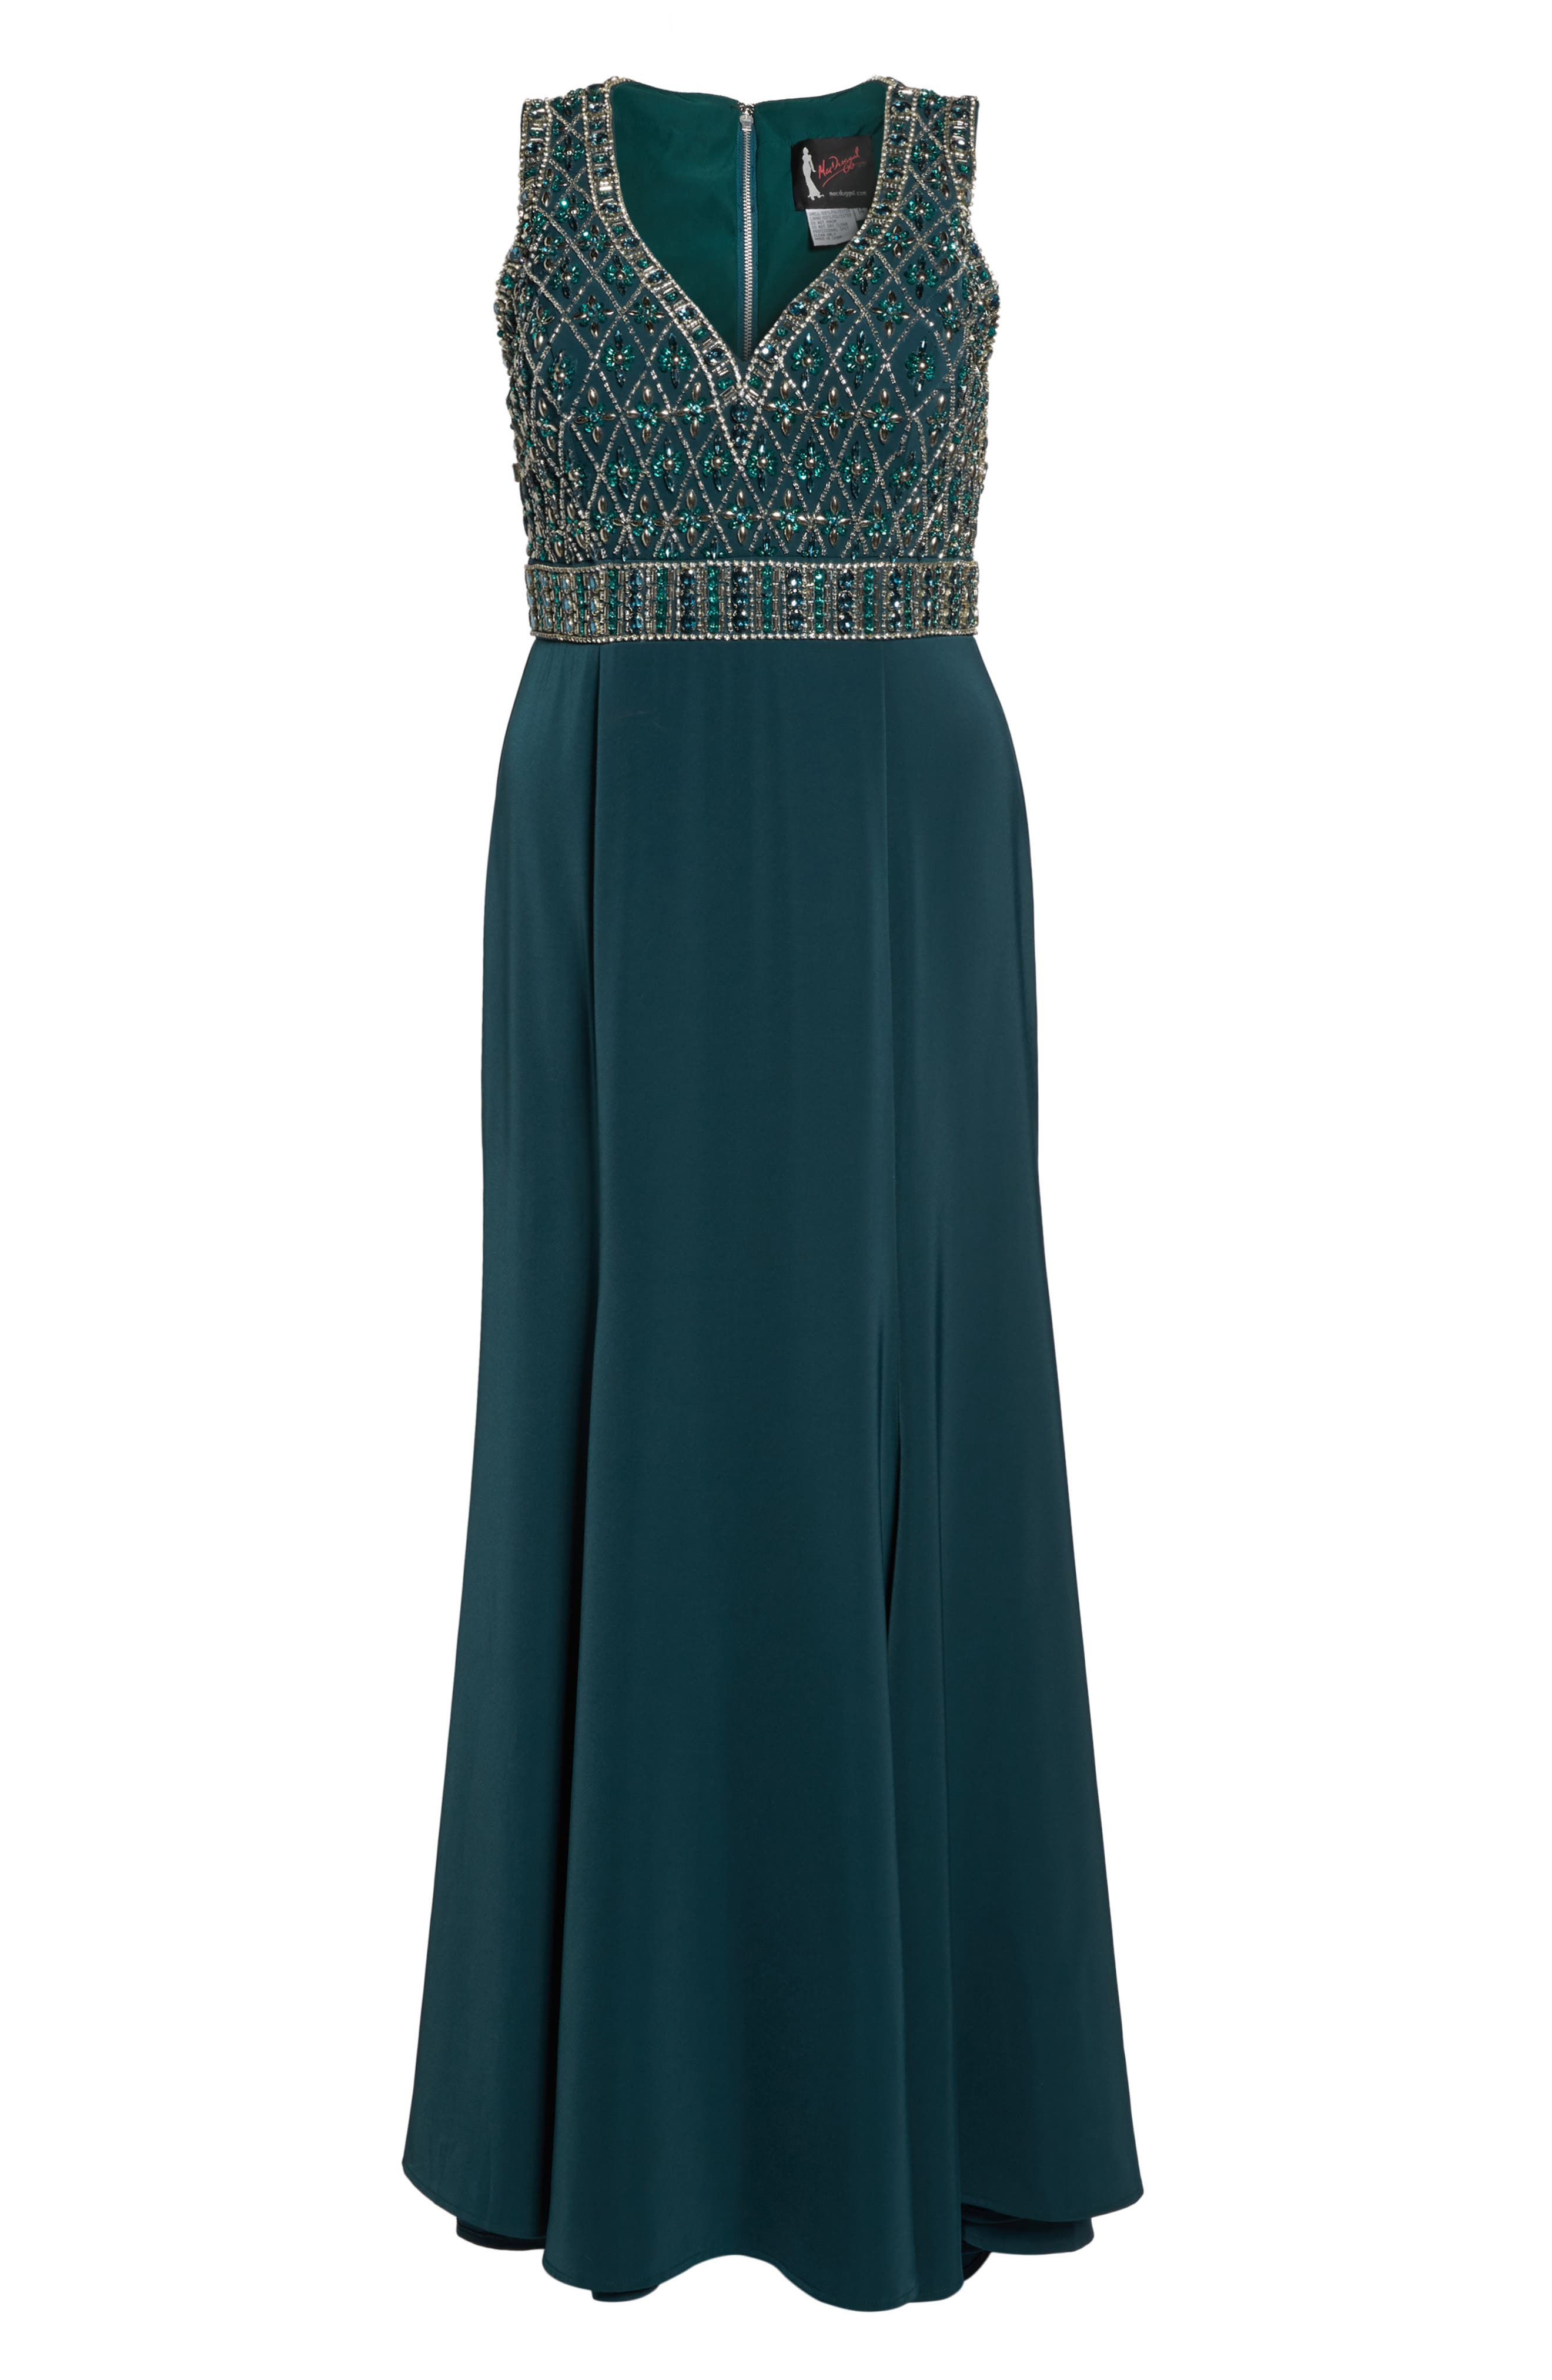 Crystal Embellished Ballgown,                             Alternate thumbnail 6, color,                             Deep Emerald